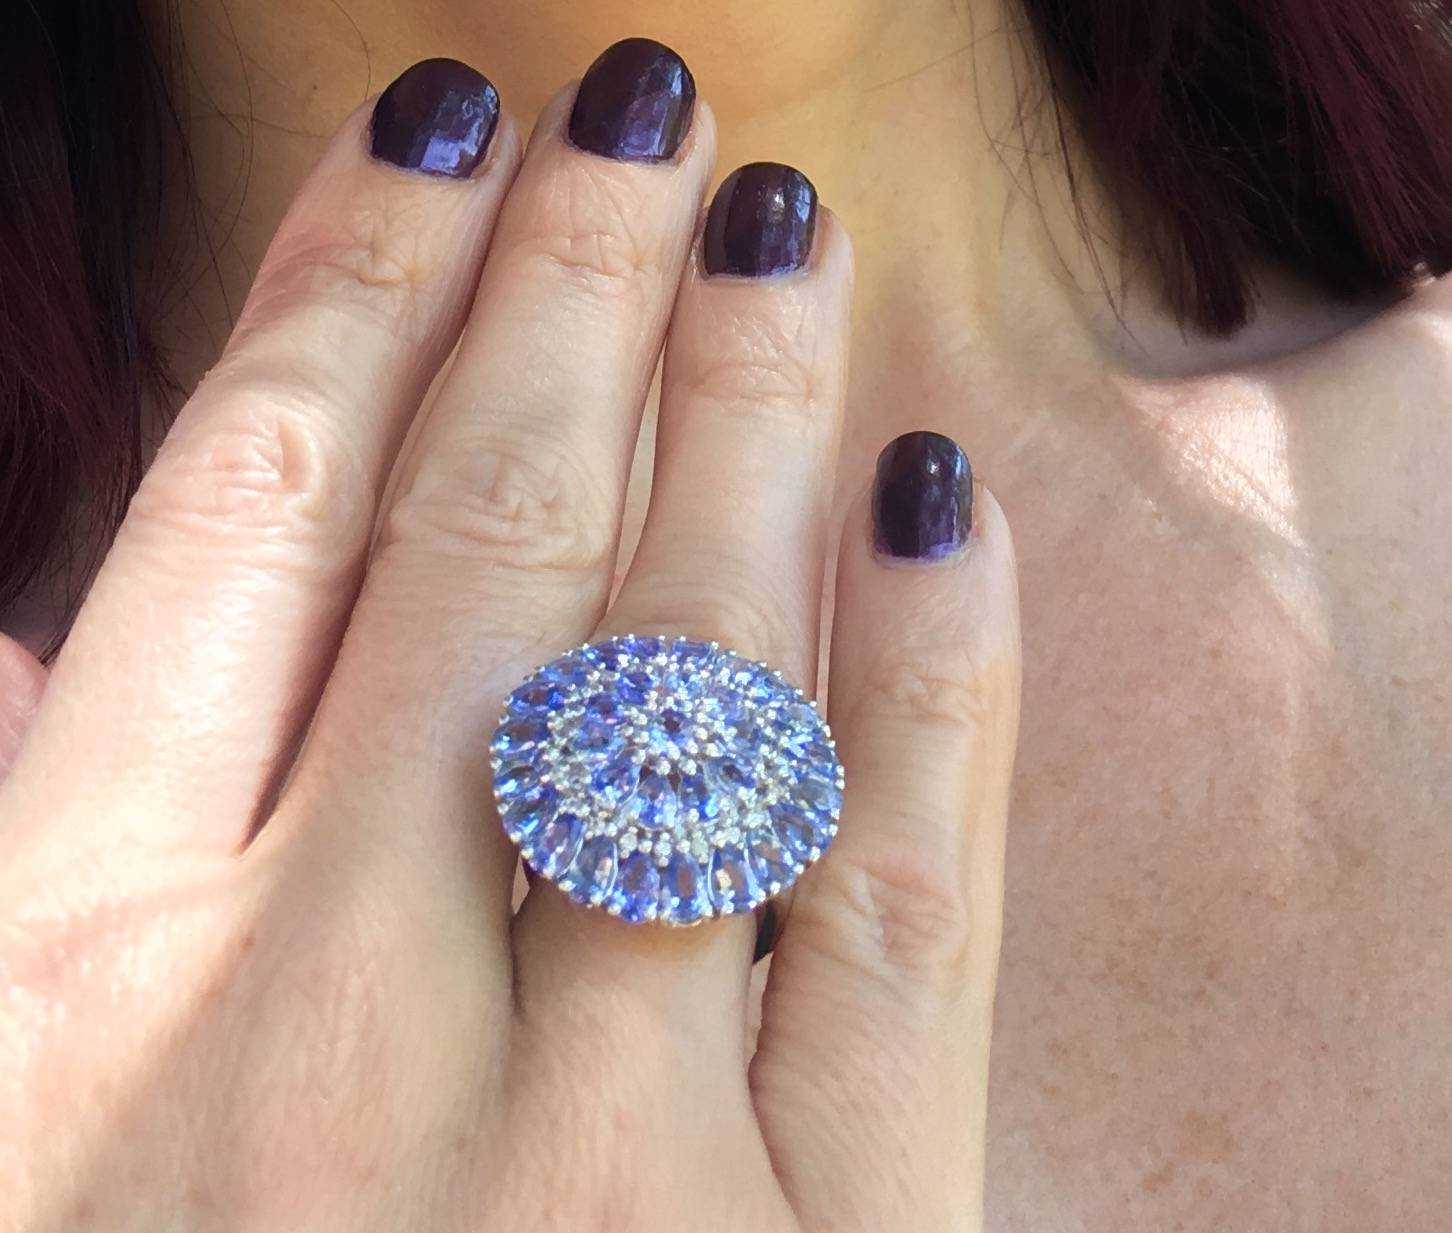 Celebrating National Selfie Day With a #Gemfie Gemporia tanzanite cluster ring